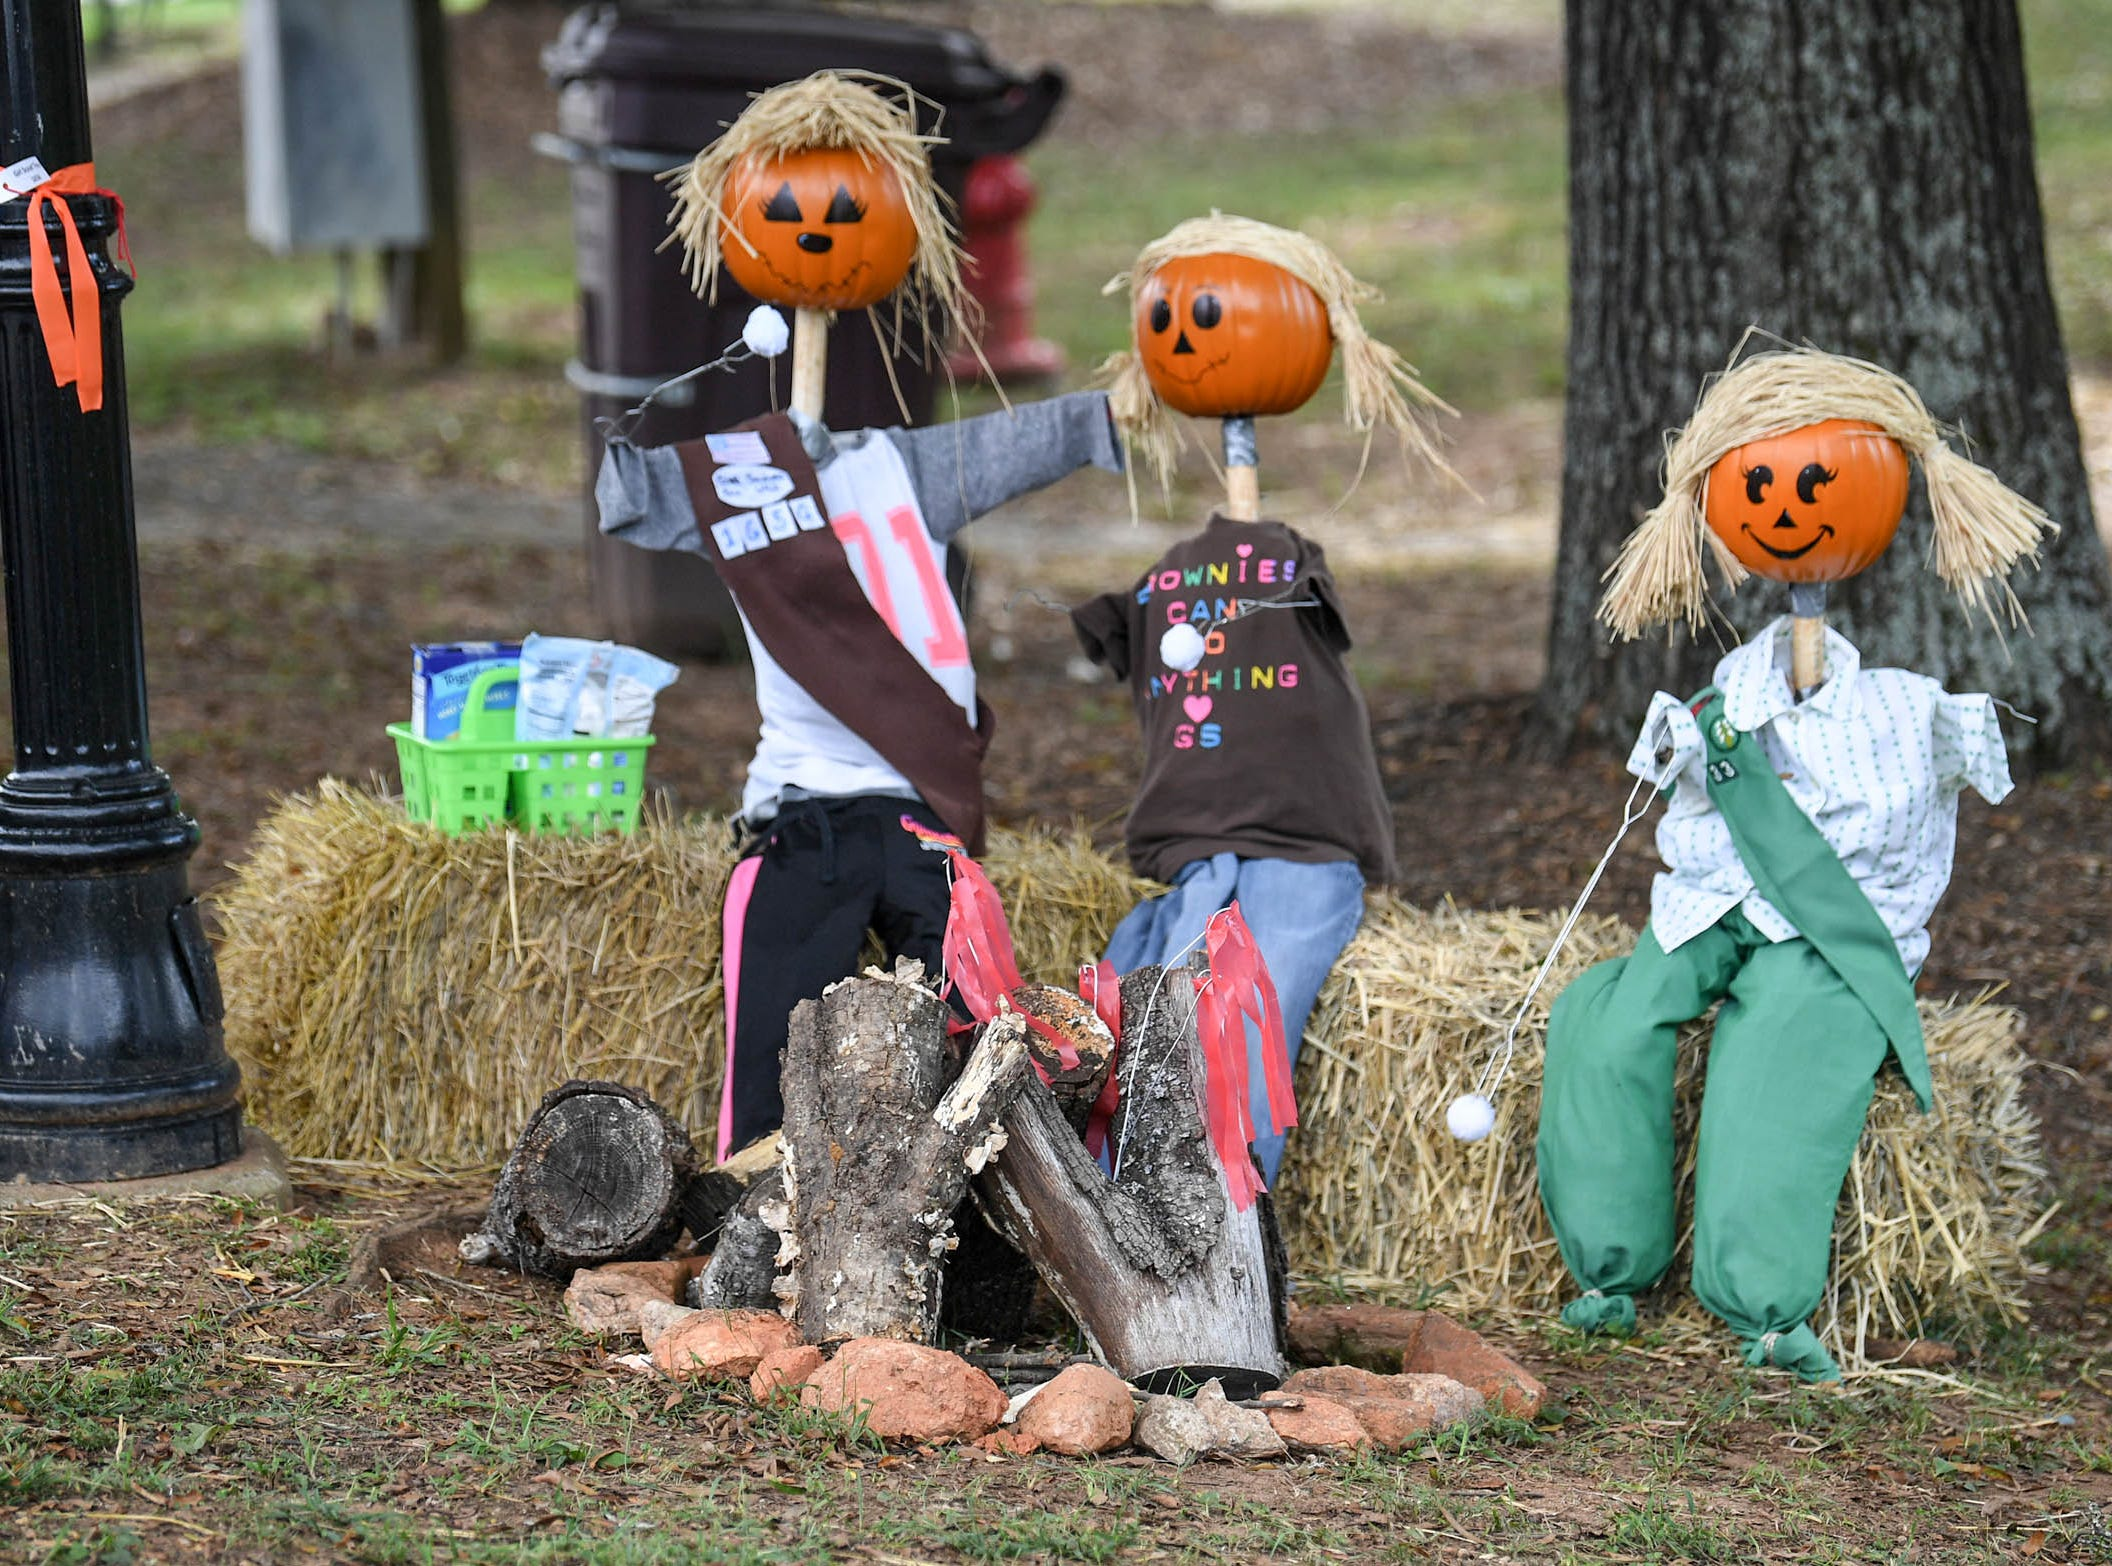 Brownie and Girls Scout scarecrows at a campfire is one of many in The Pendleton Scarecrow Contest leading up to the 20th Fall Harvest Festival in the village green Saturday, October 6 from 10 a.m. to 5 p.m. The annual contest in Pendleton for businesses, individuals, groups, organizations and churches who create fun not scary Scarecrows. People driving around the downtown square can see different theme scarecrows.